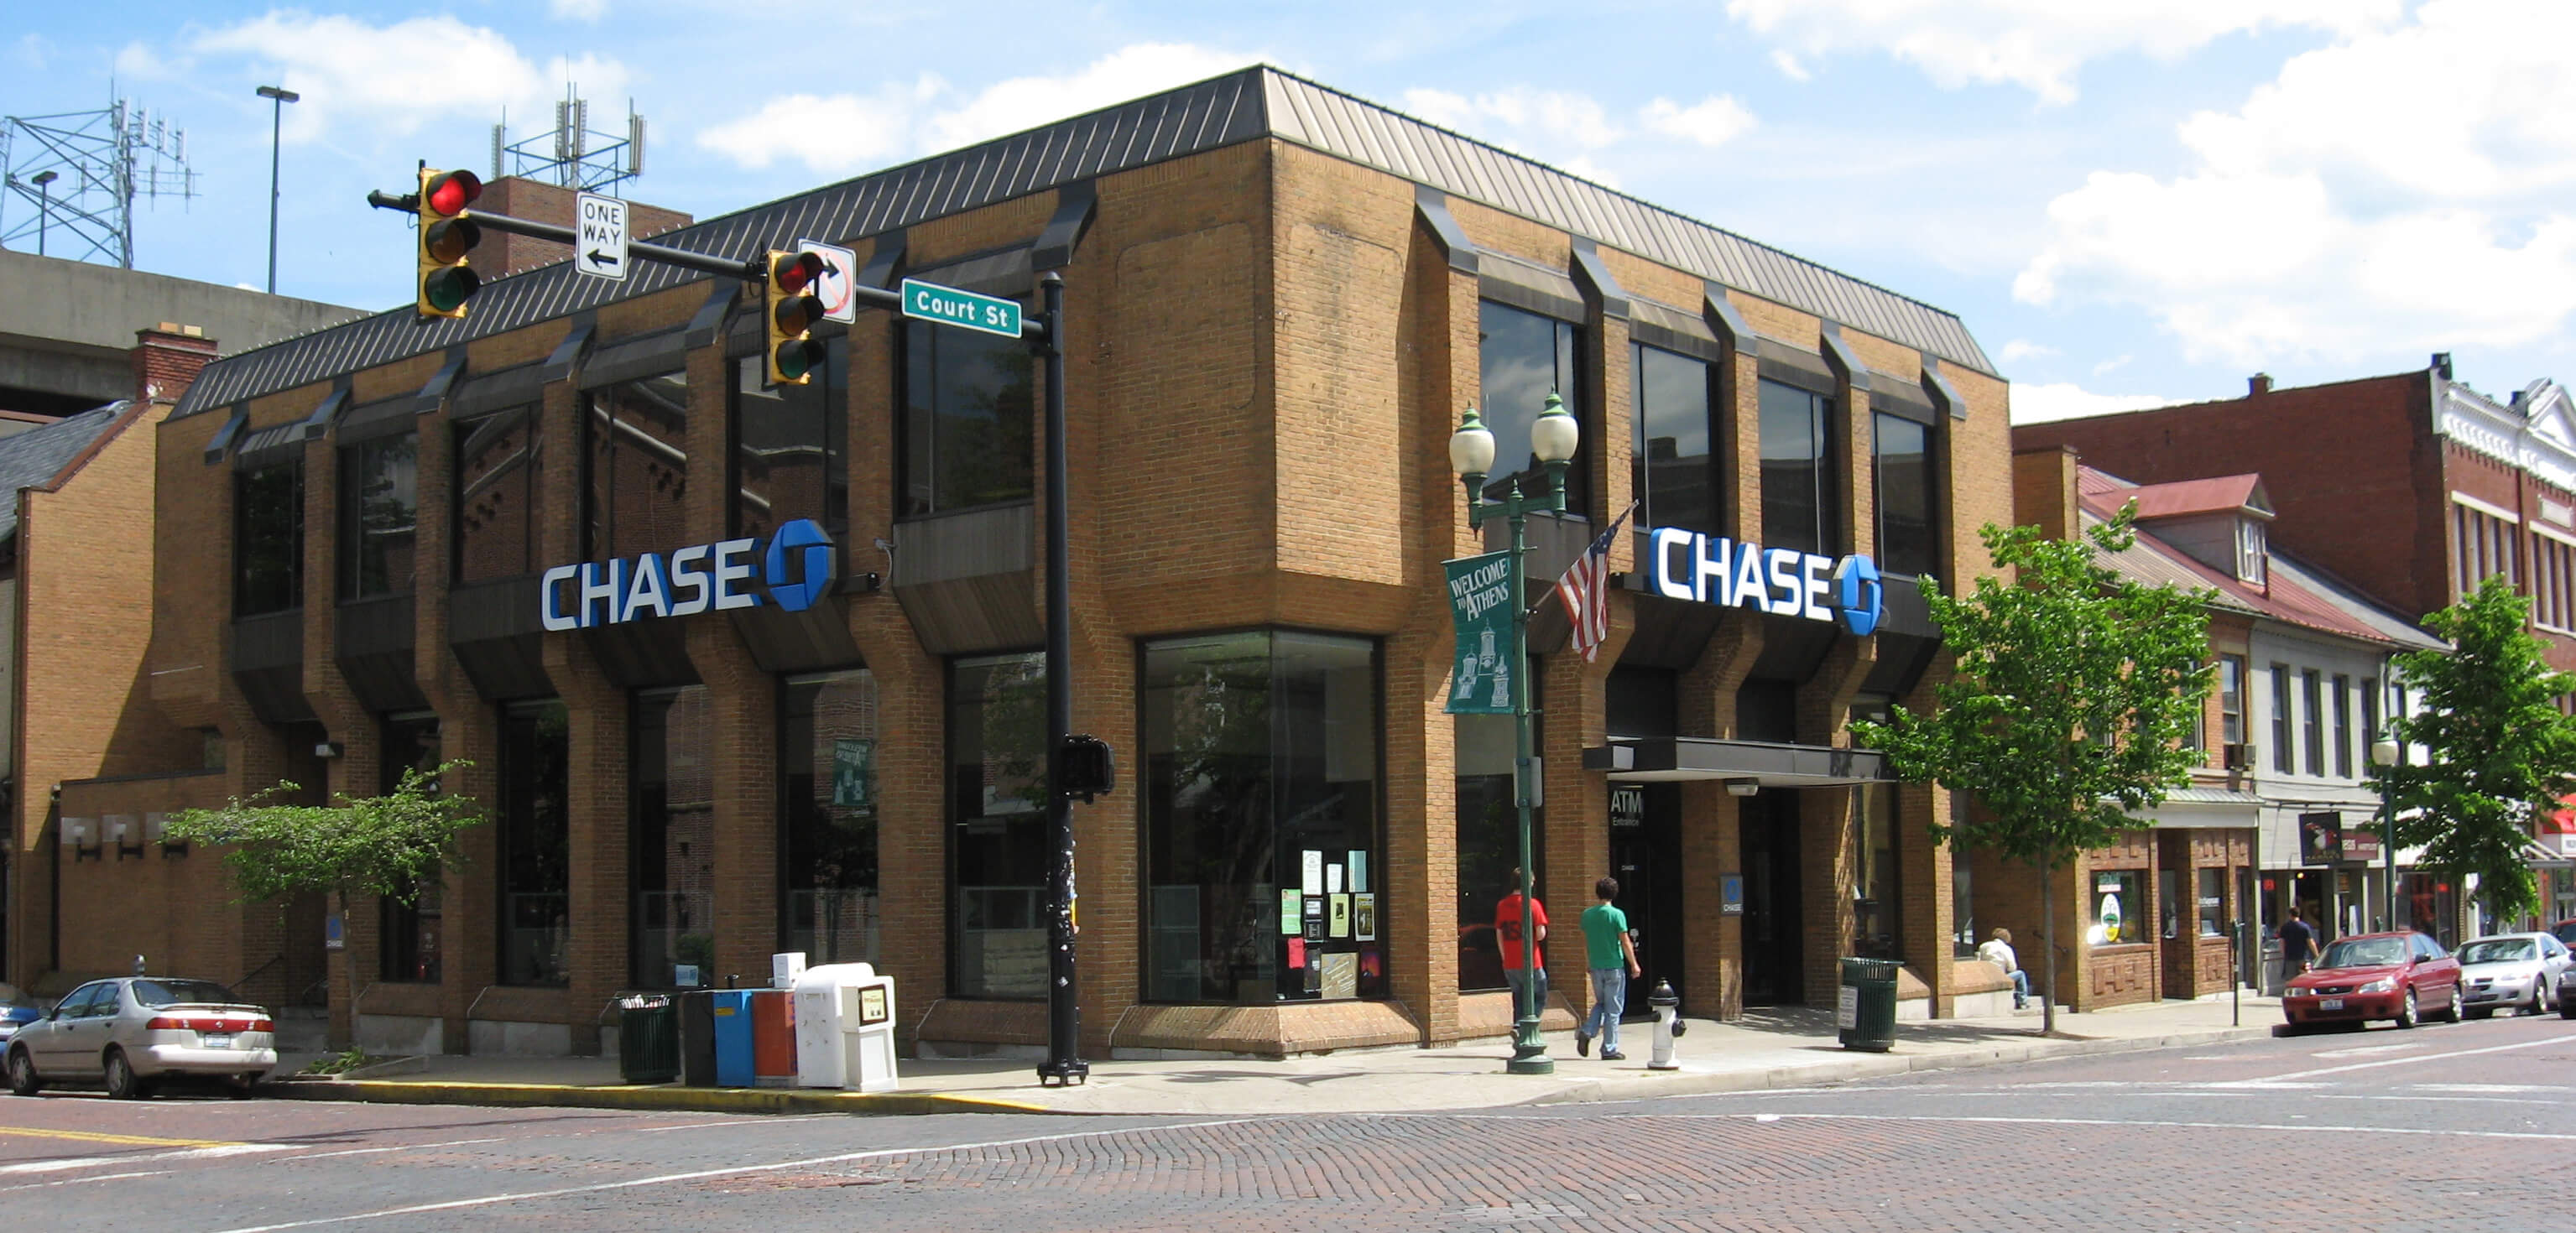 Chase Bank Locations West Palm Beachchase Bank Military Trail West Palm Beach